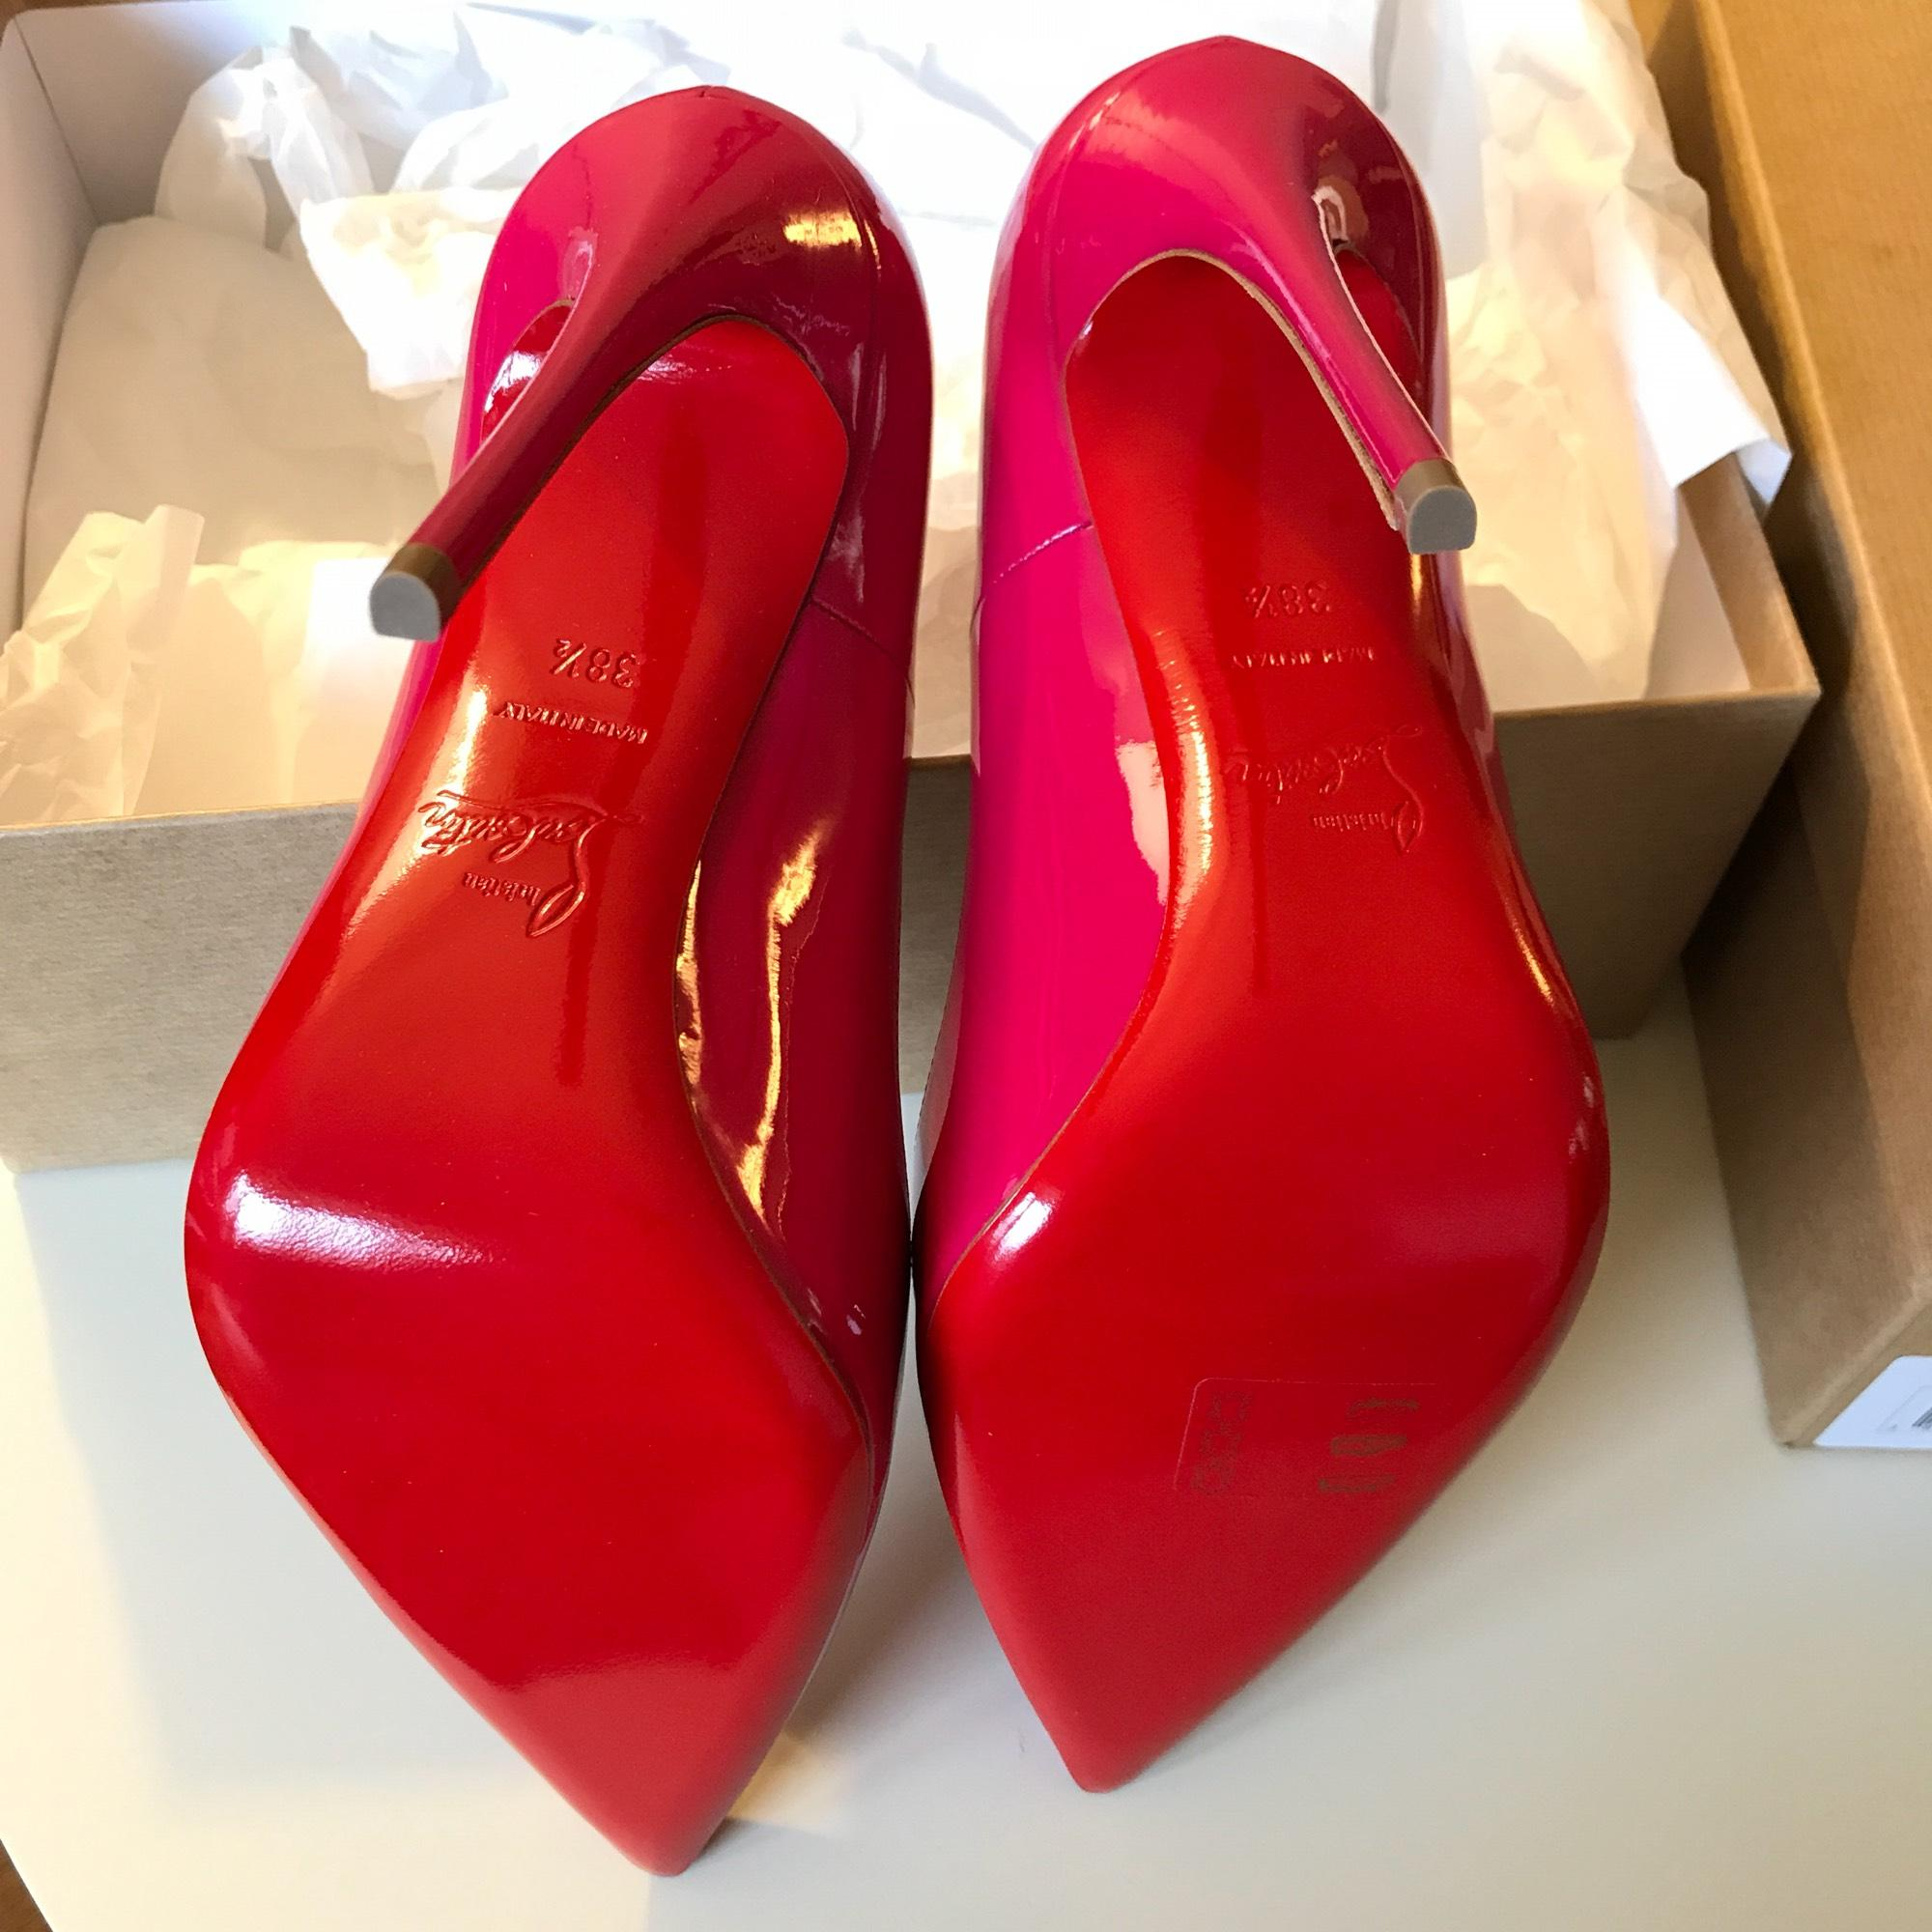 7cce741fb286 ... Christian Louboutin Rosa Pink So So So Kate Patent Leather 120mm Pumps  Size EU 38.5 ...